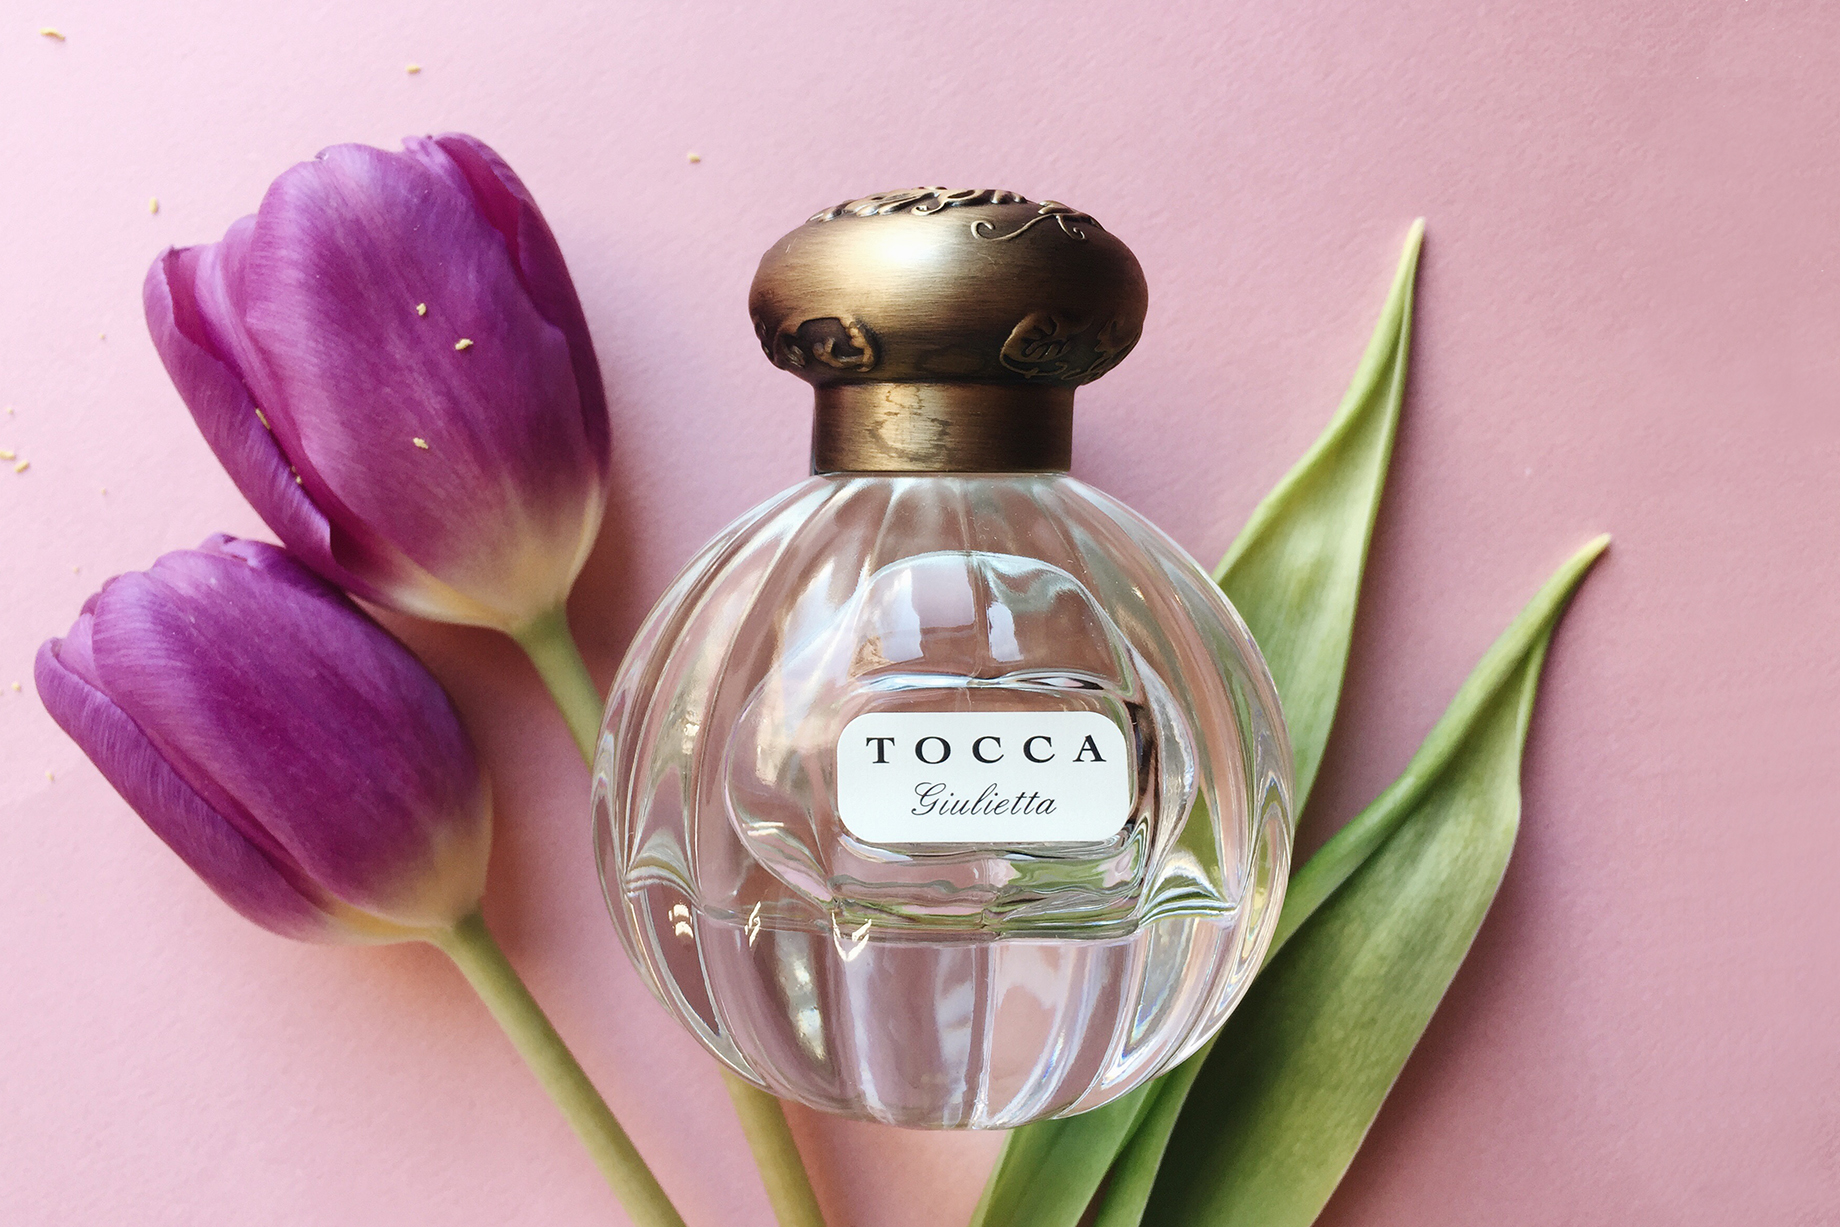 Your Newest Scented Obsession: Giulietta by TOCCA